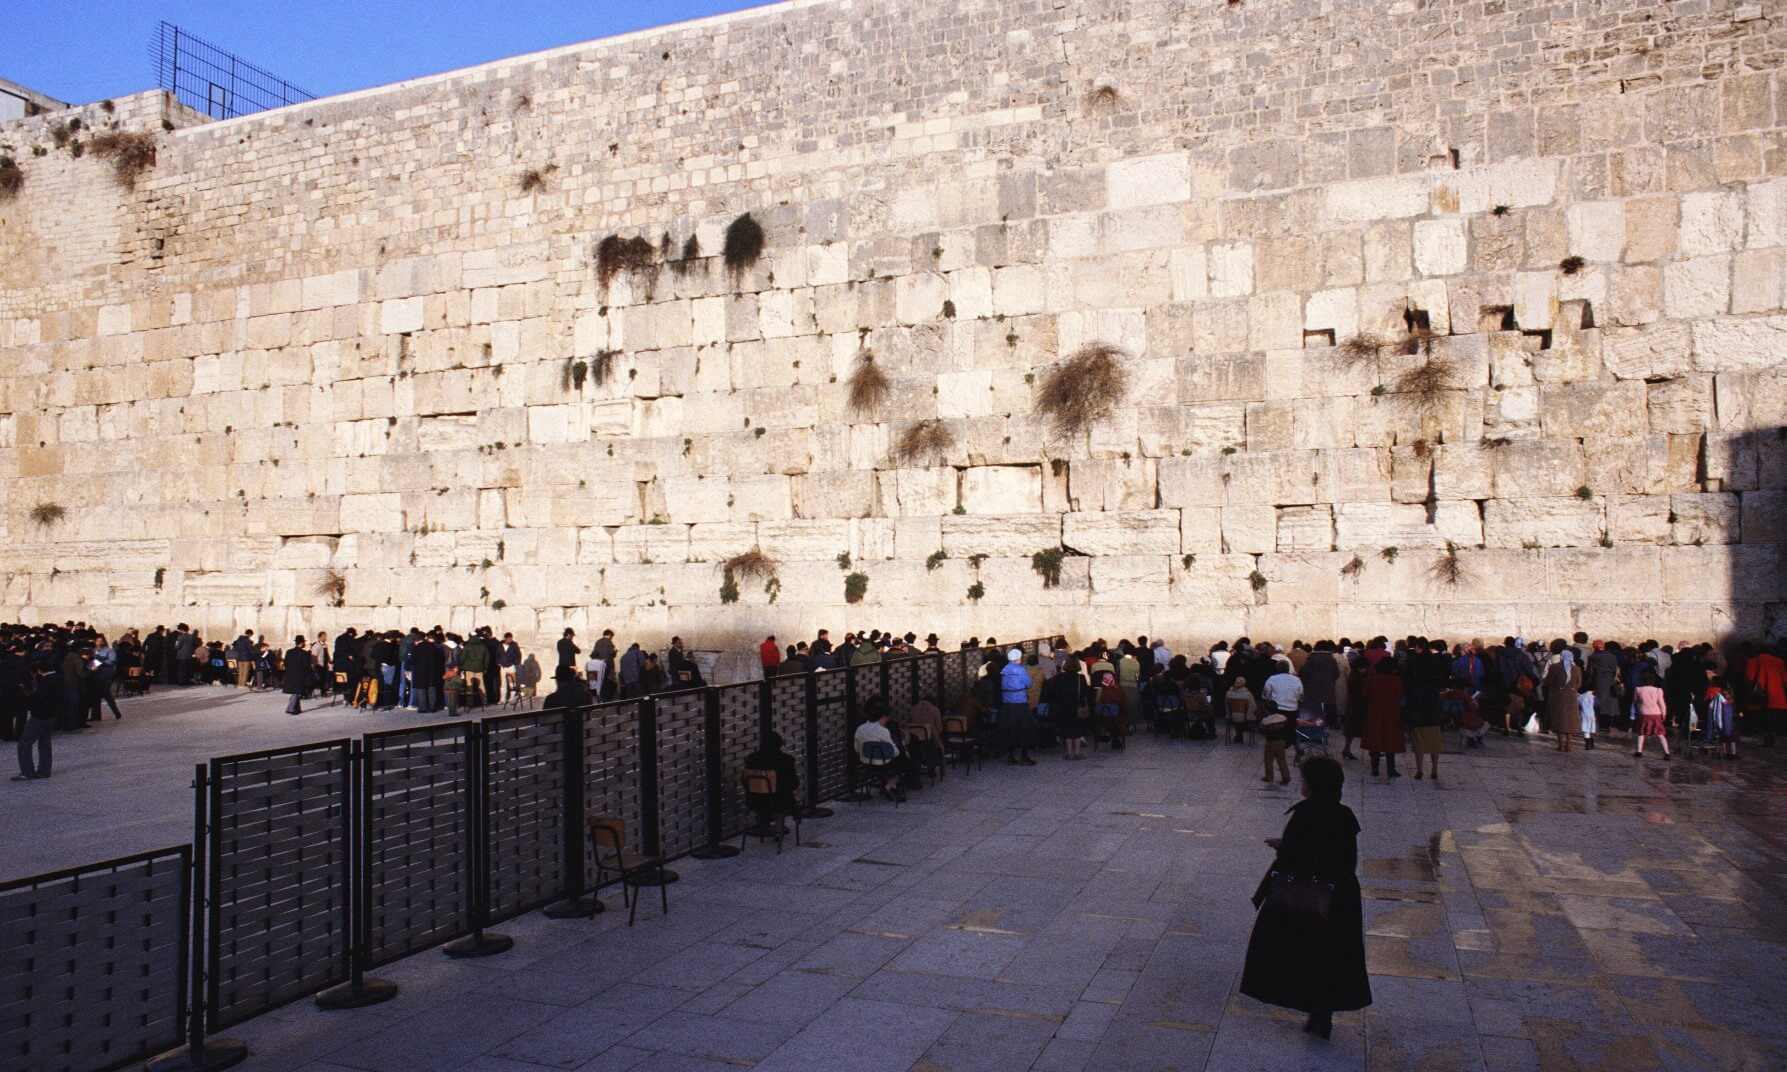 Men and women separated by a fence pray at the Western Wall in Jerusalem